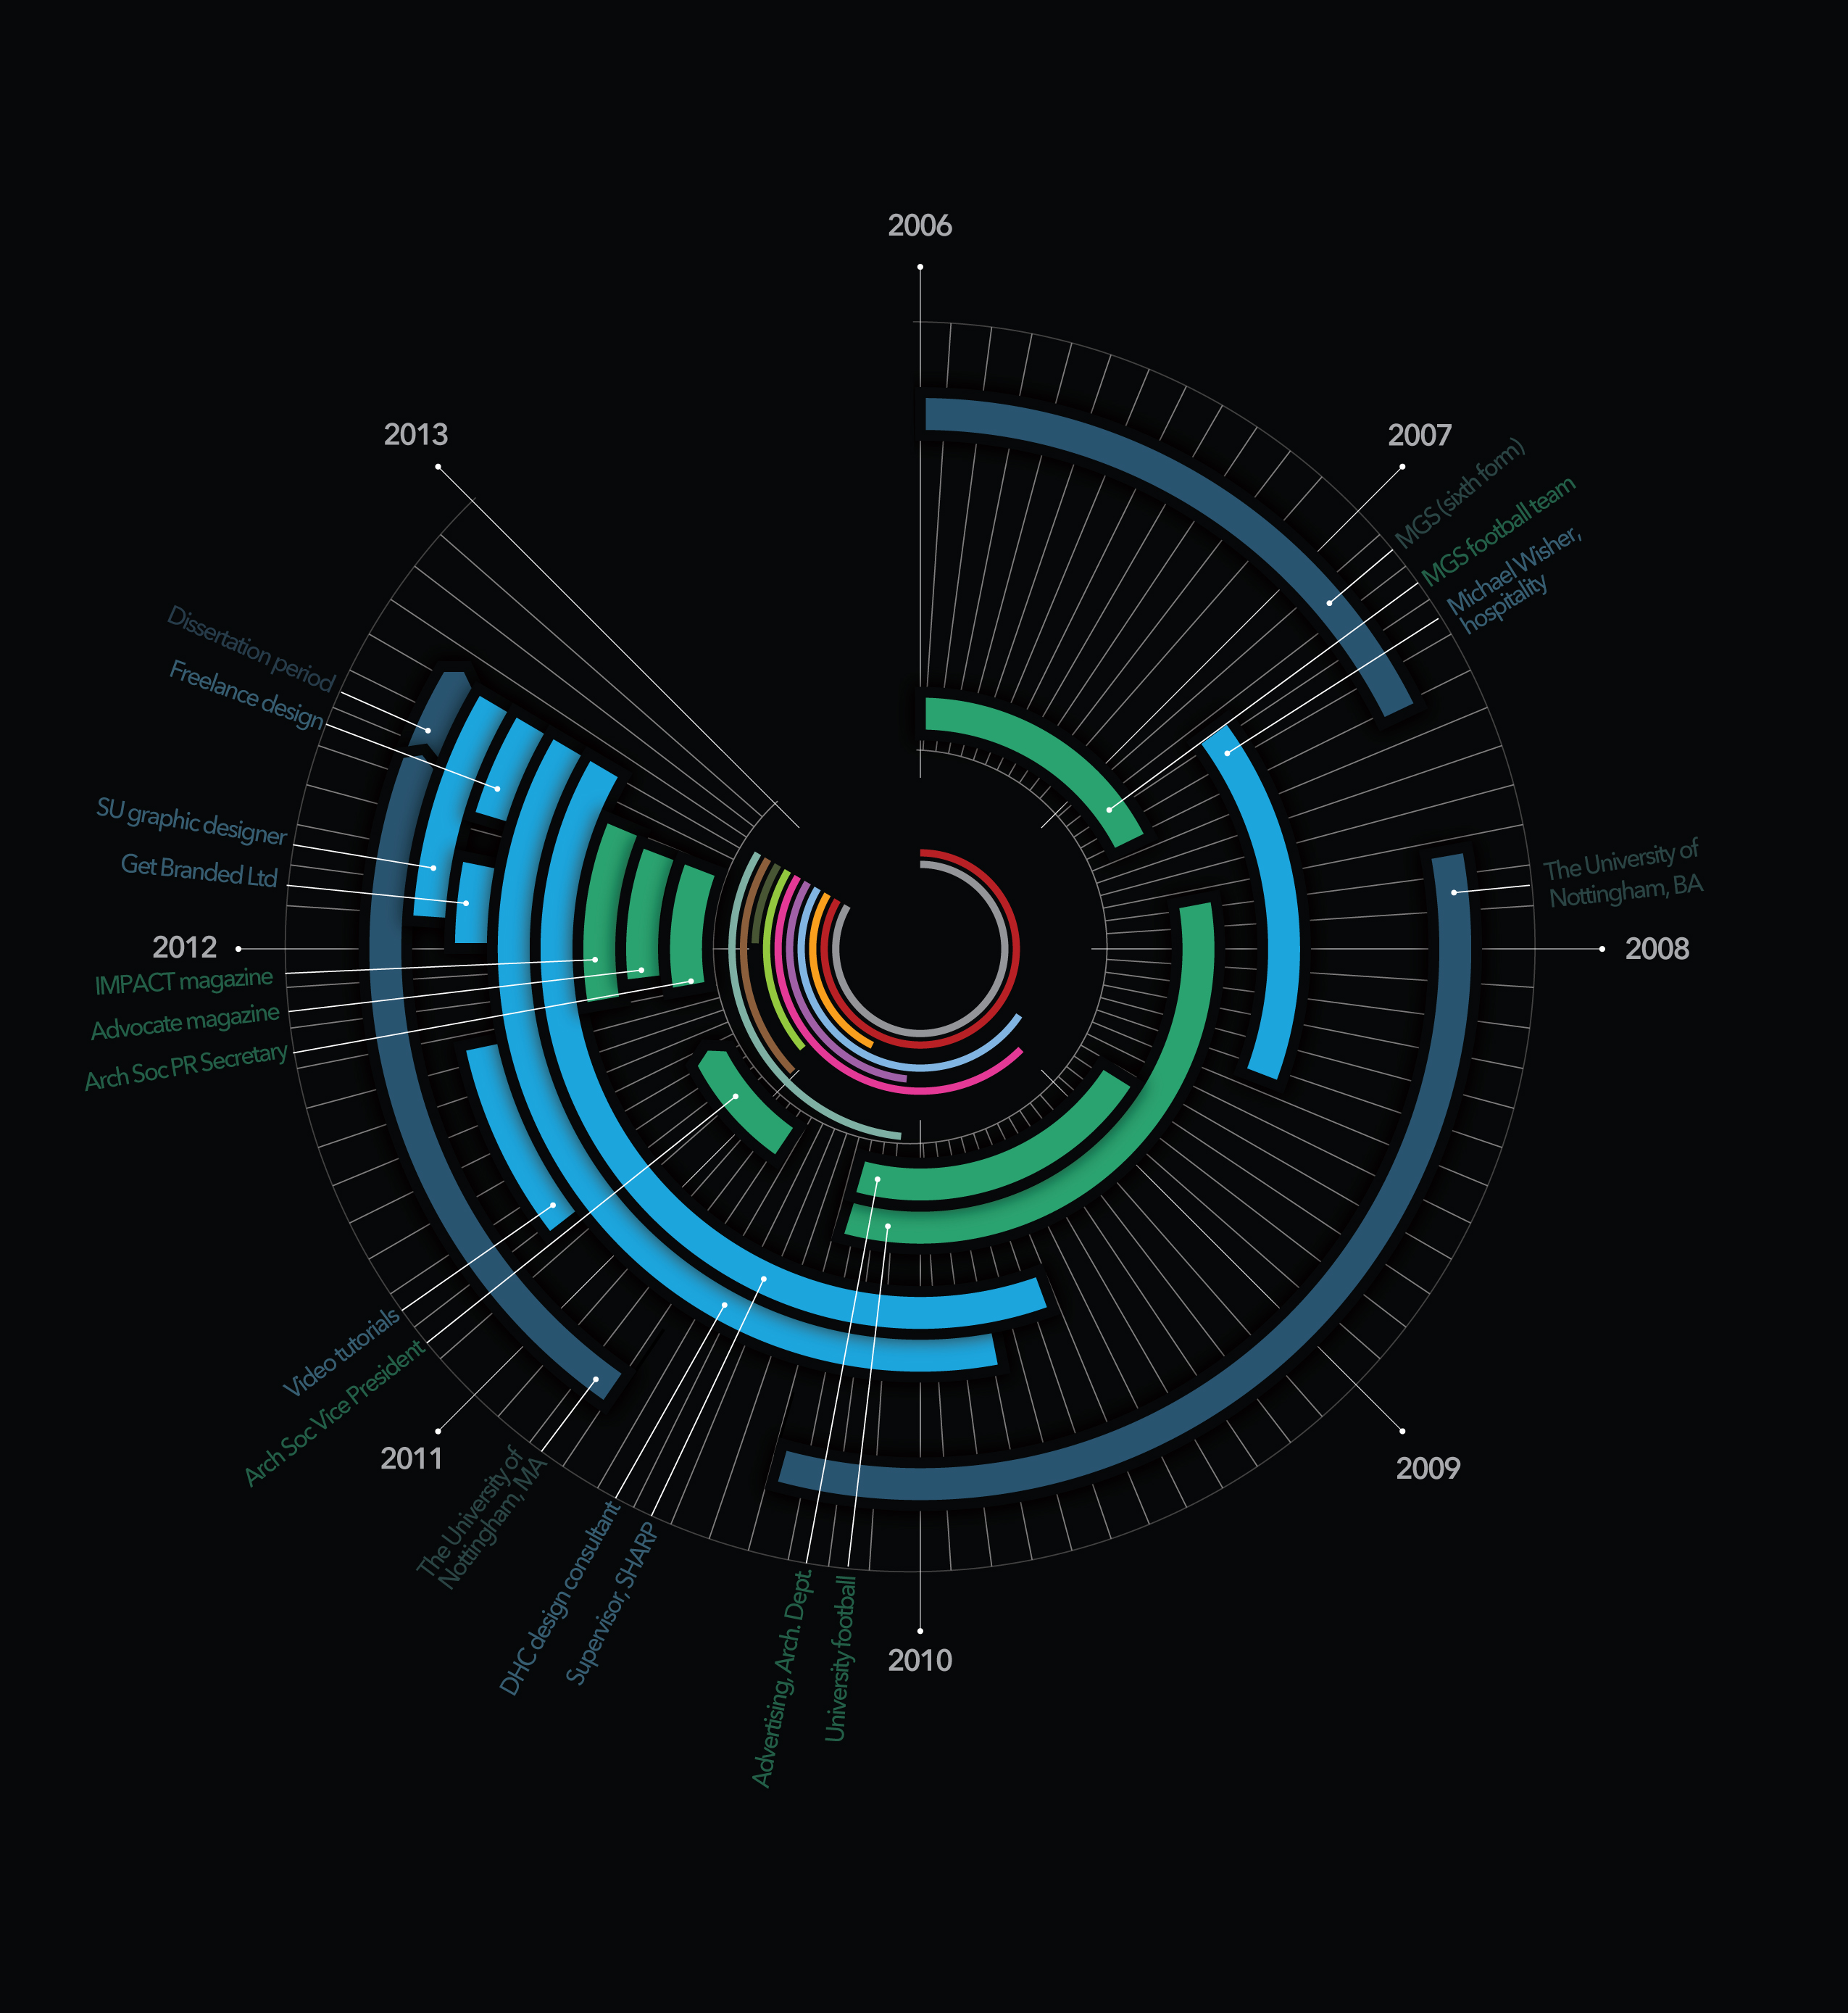 resume timeline infographic visually